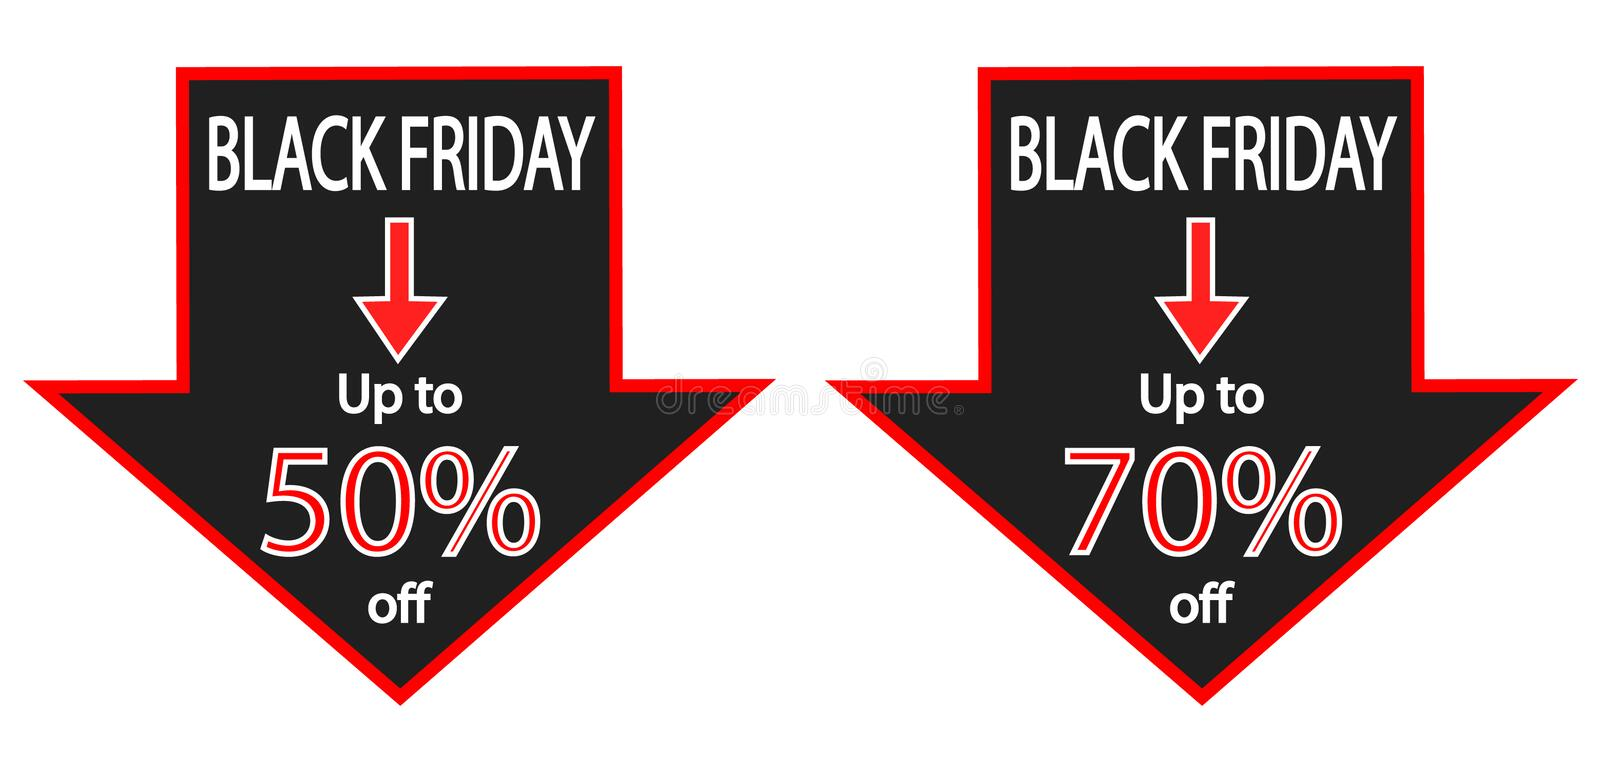 Download Black Friday Savings Ads stock illustration. Image of discount - 35784598